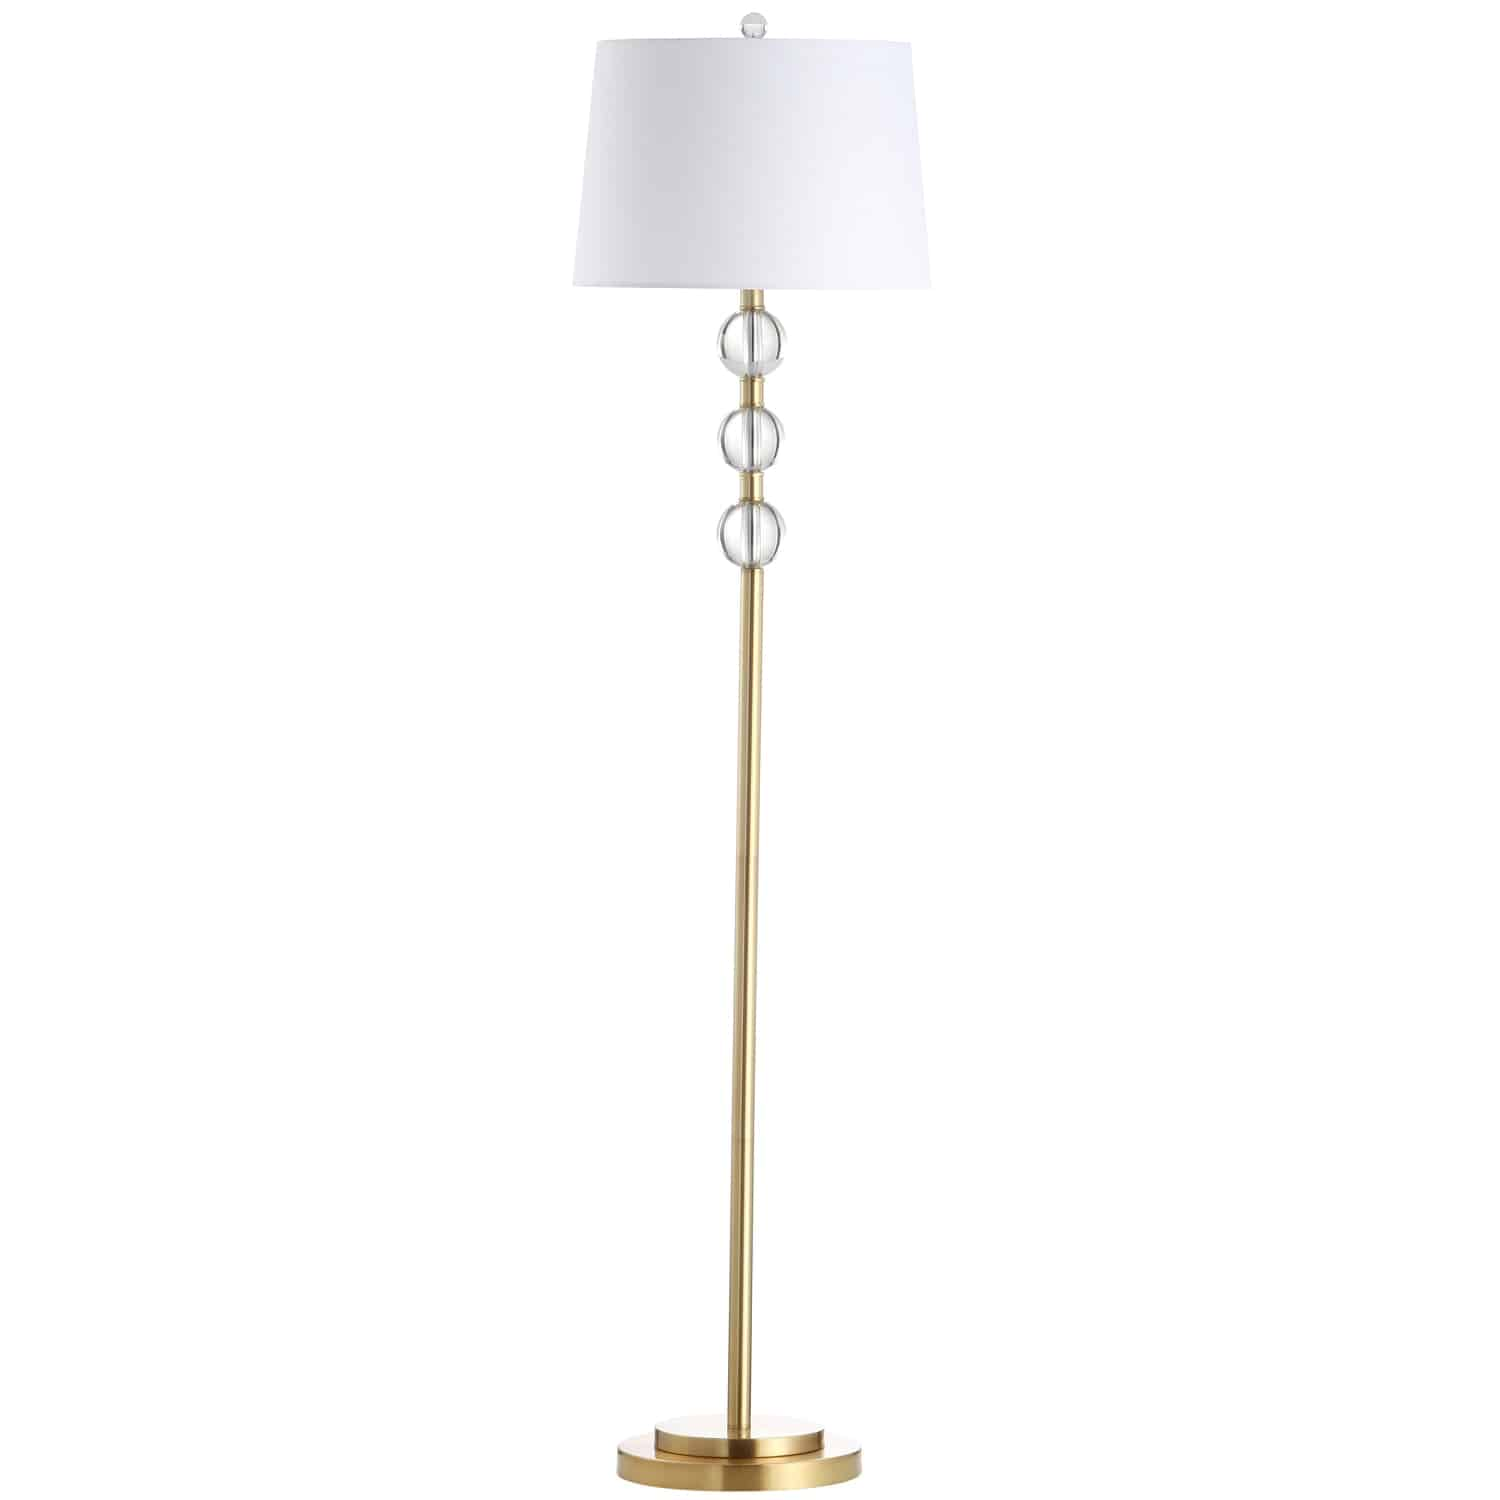 1 Light Incandescent Crystal Floor Lamp, Aged Brass with White Shade